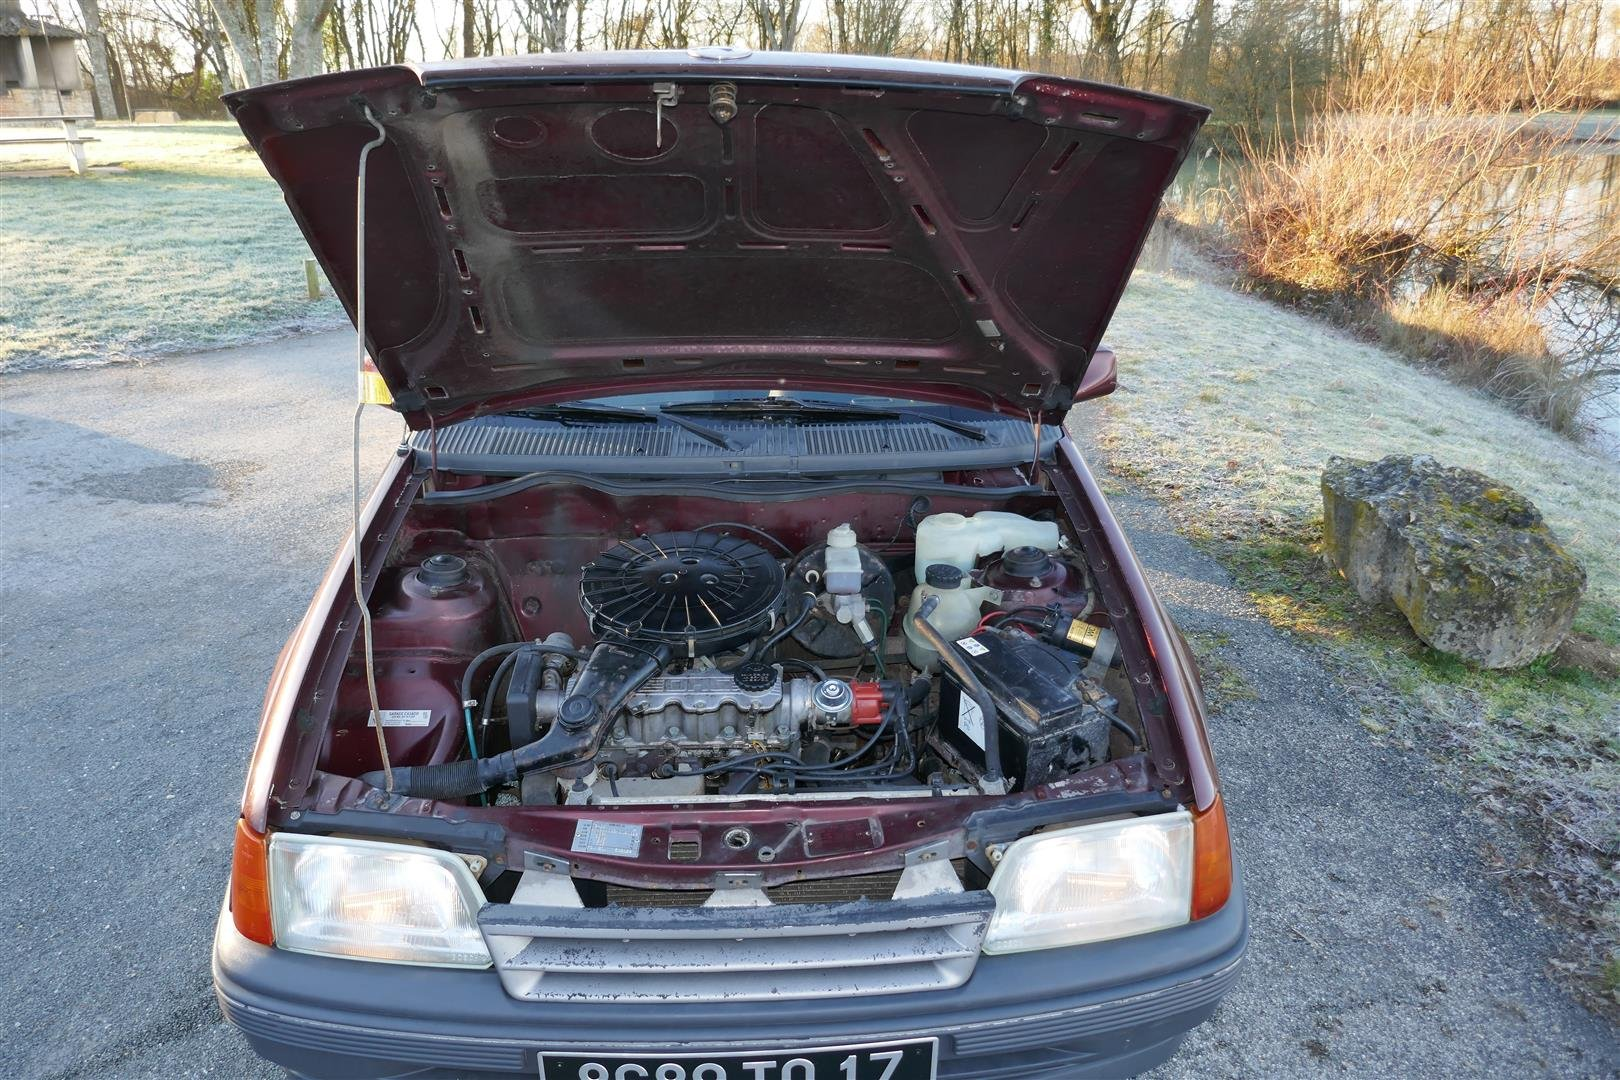 Opel Kadett 1.4 Sport , 1991. 1 owner from new LHD For Sale (picture 3 of 6)